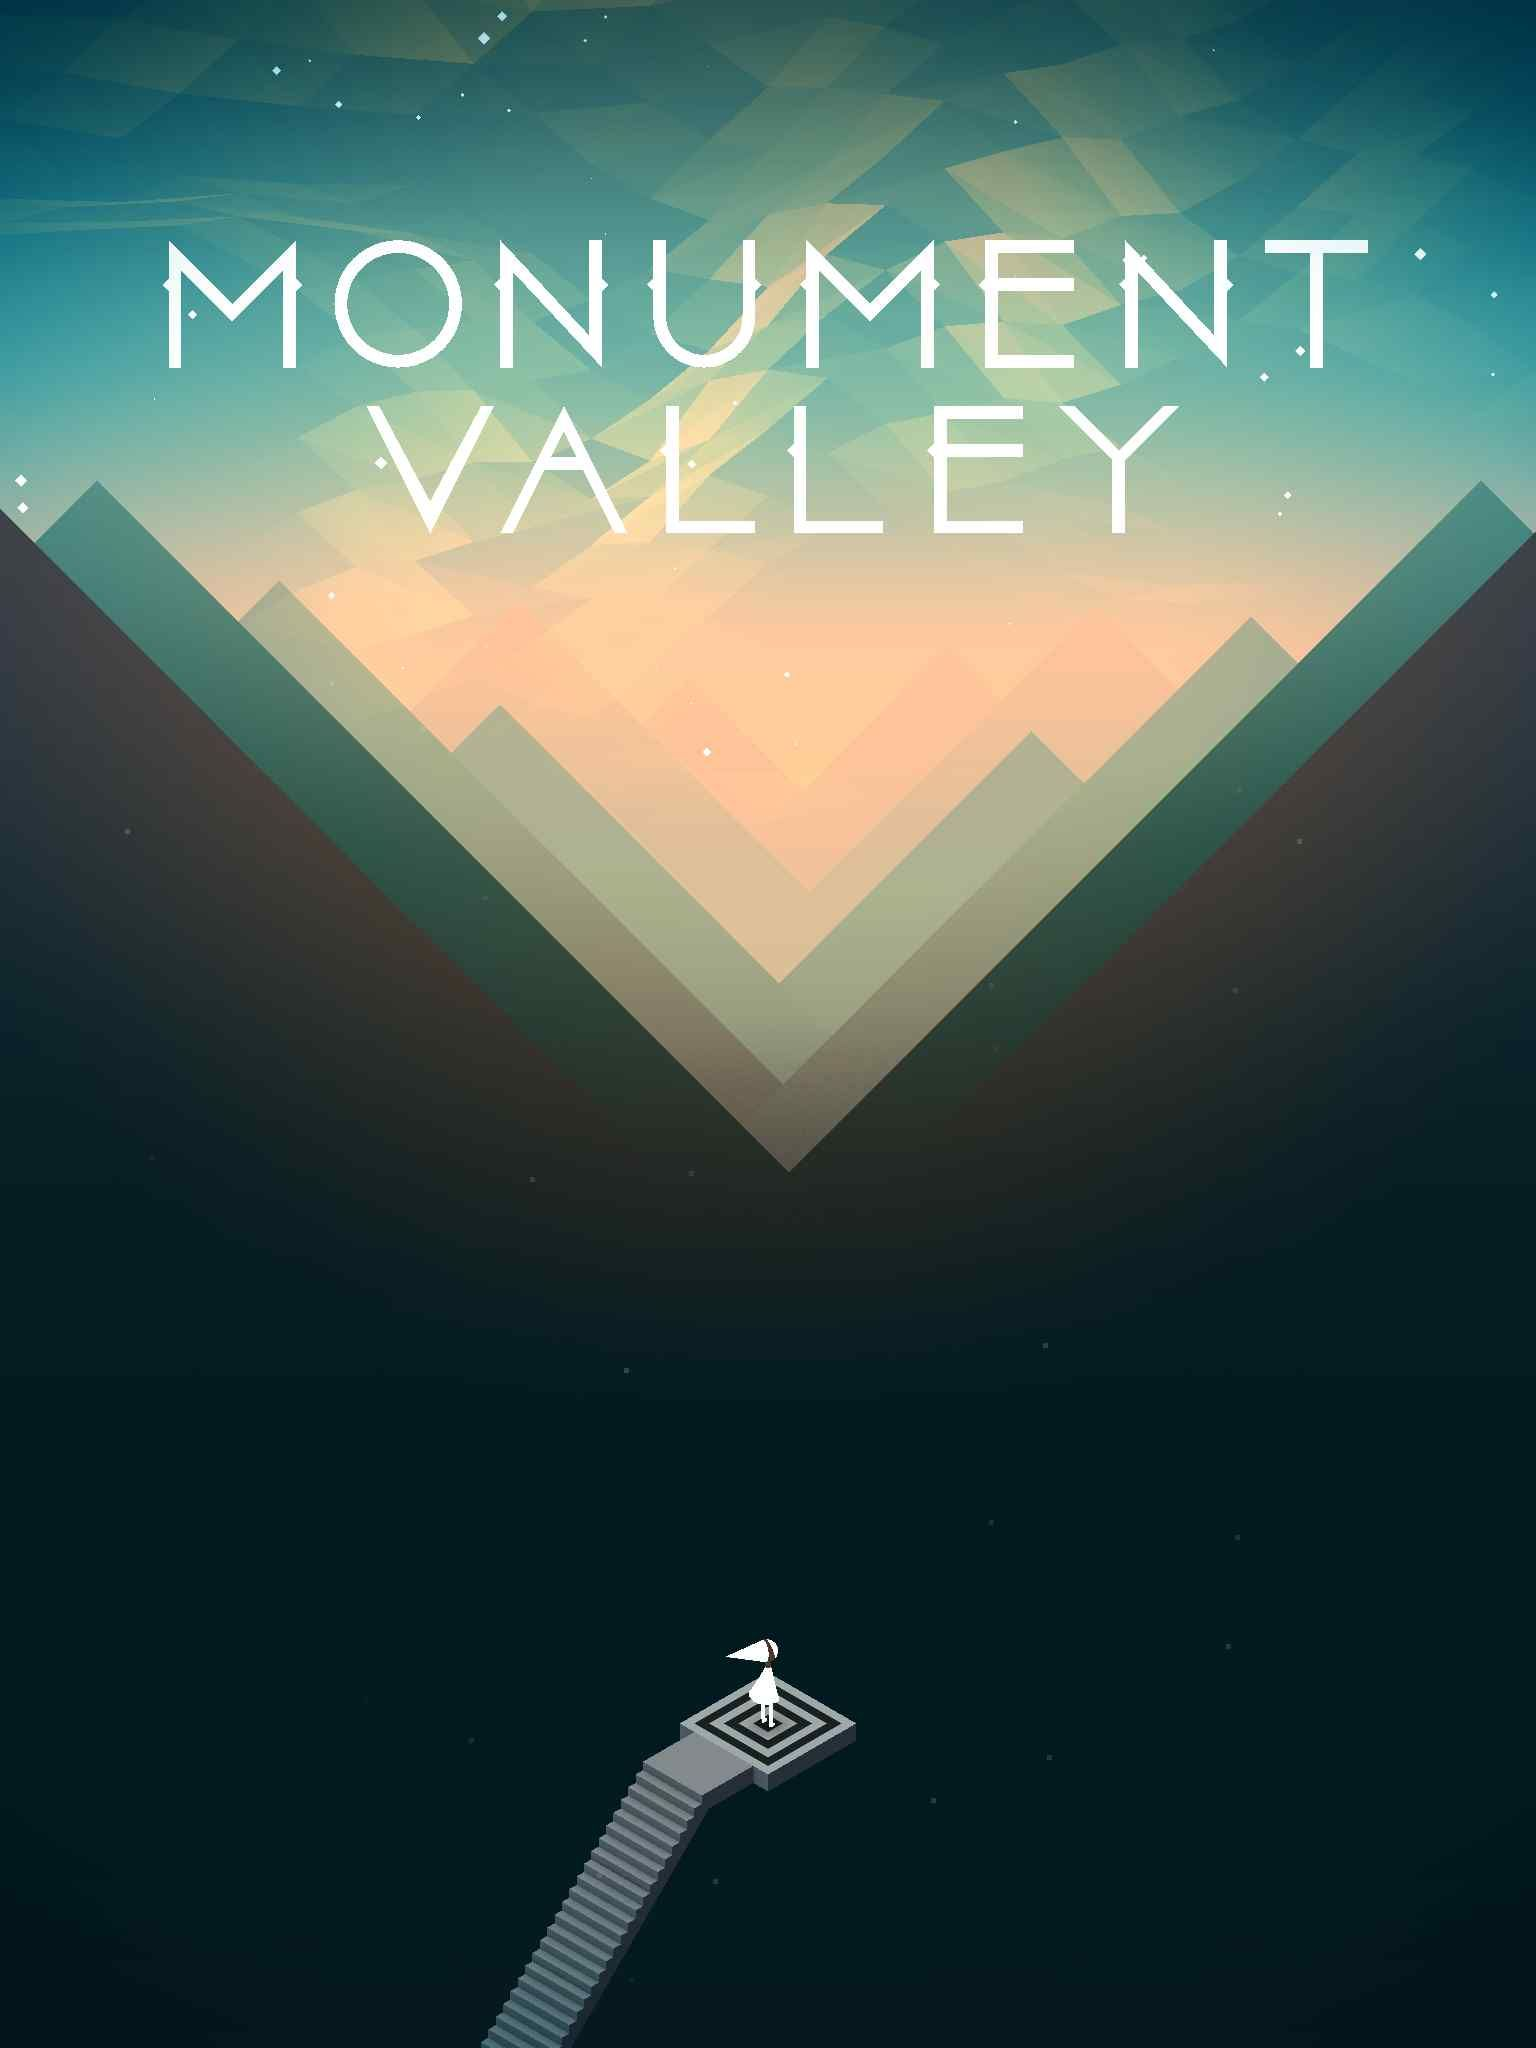 Monument Valley Game Wallpaper Google Search Wedding Invitations